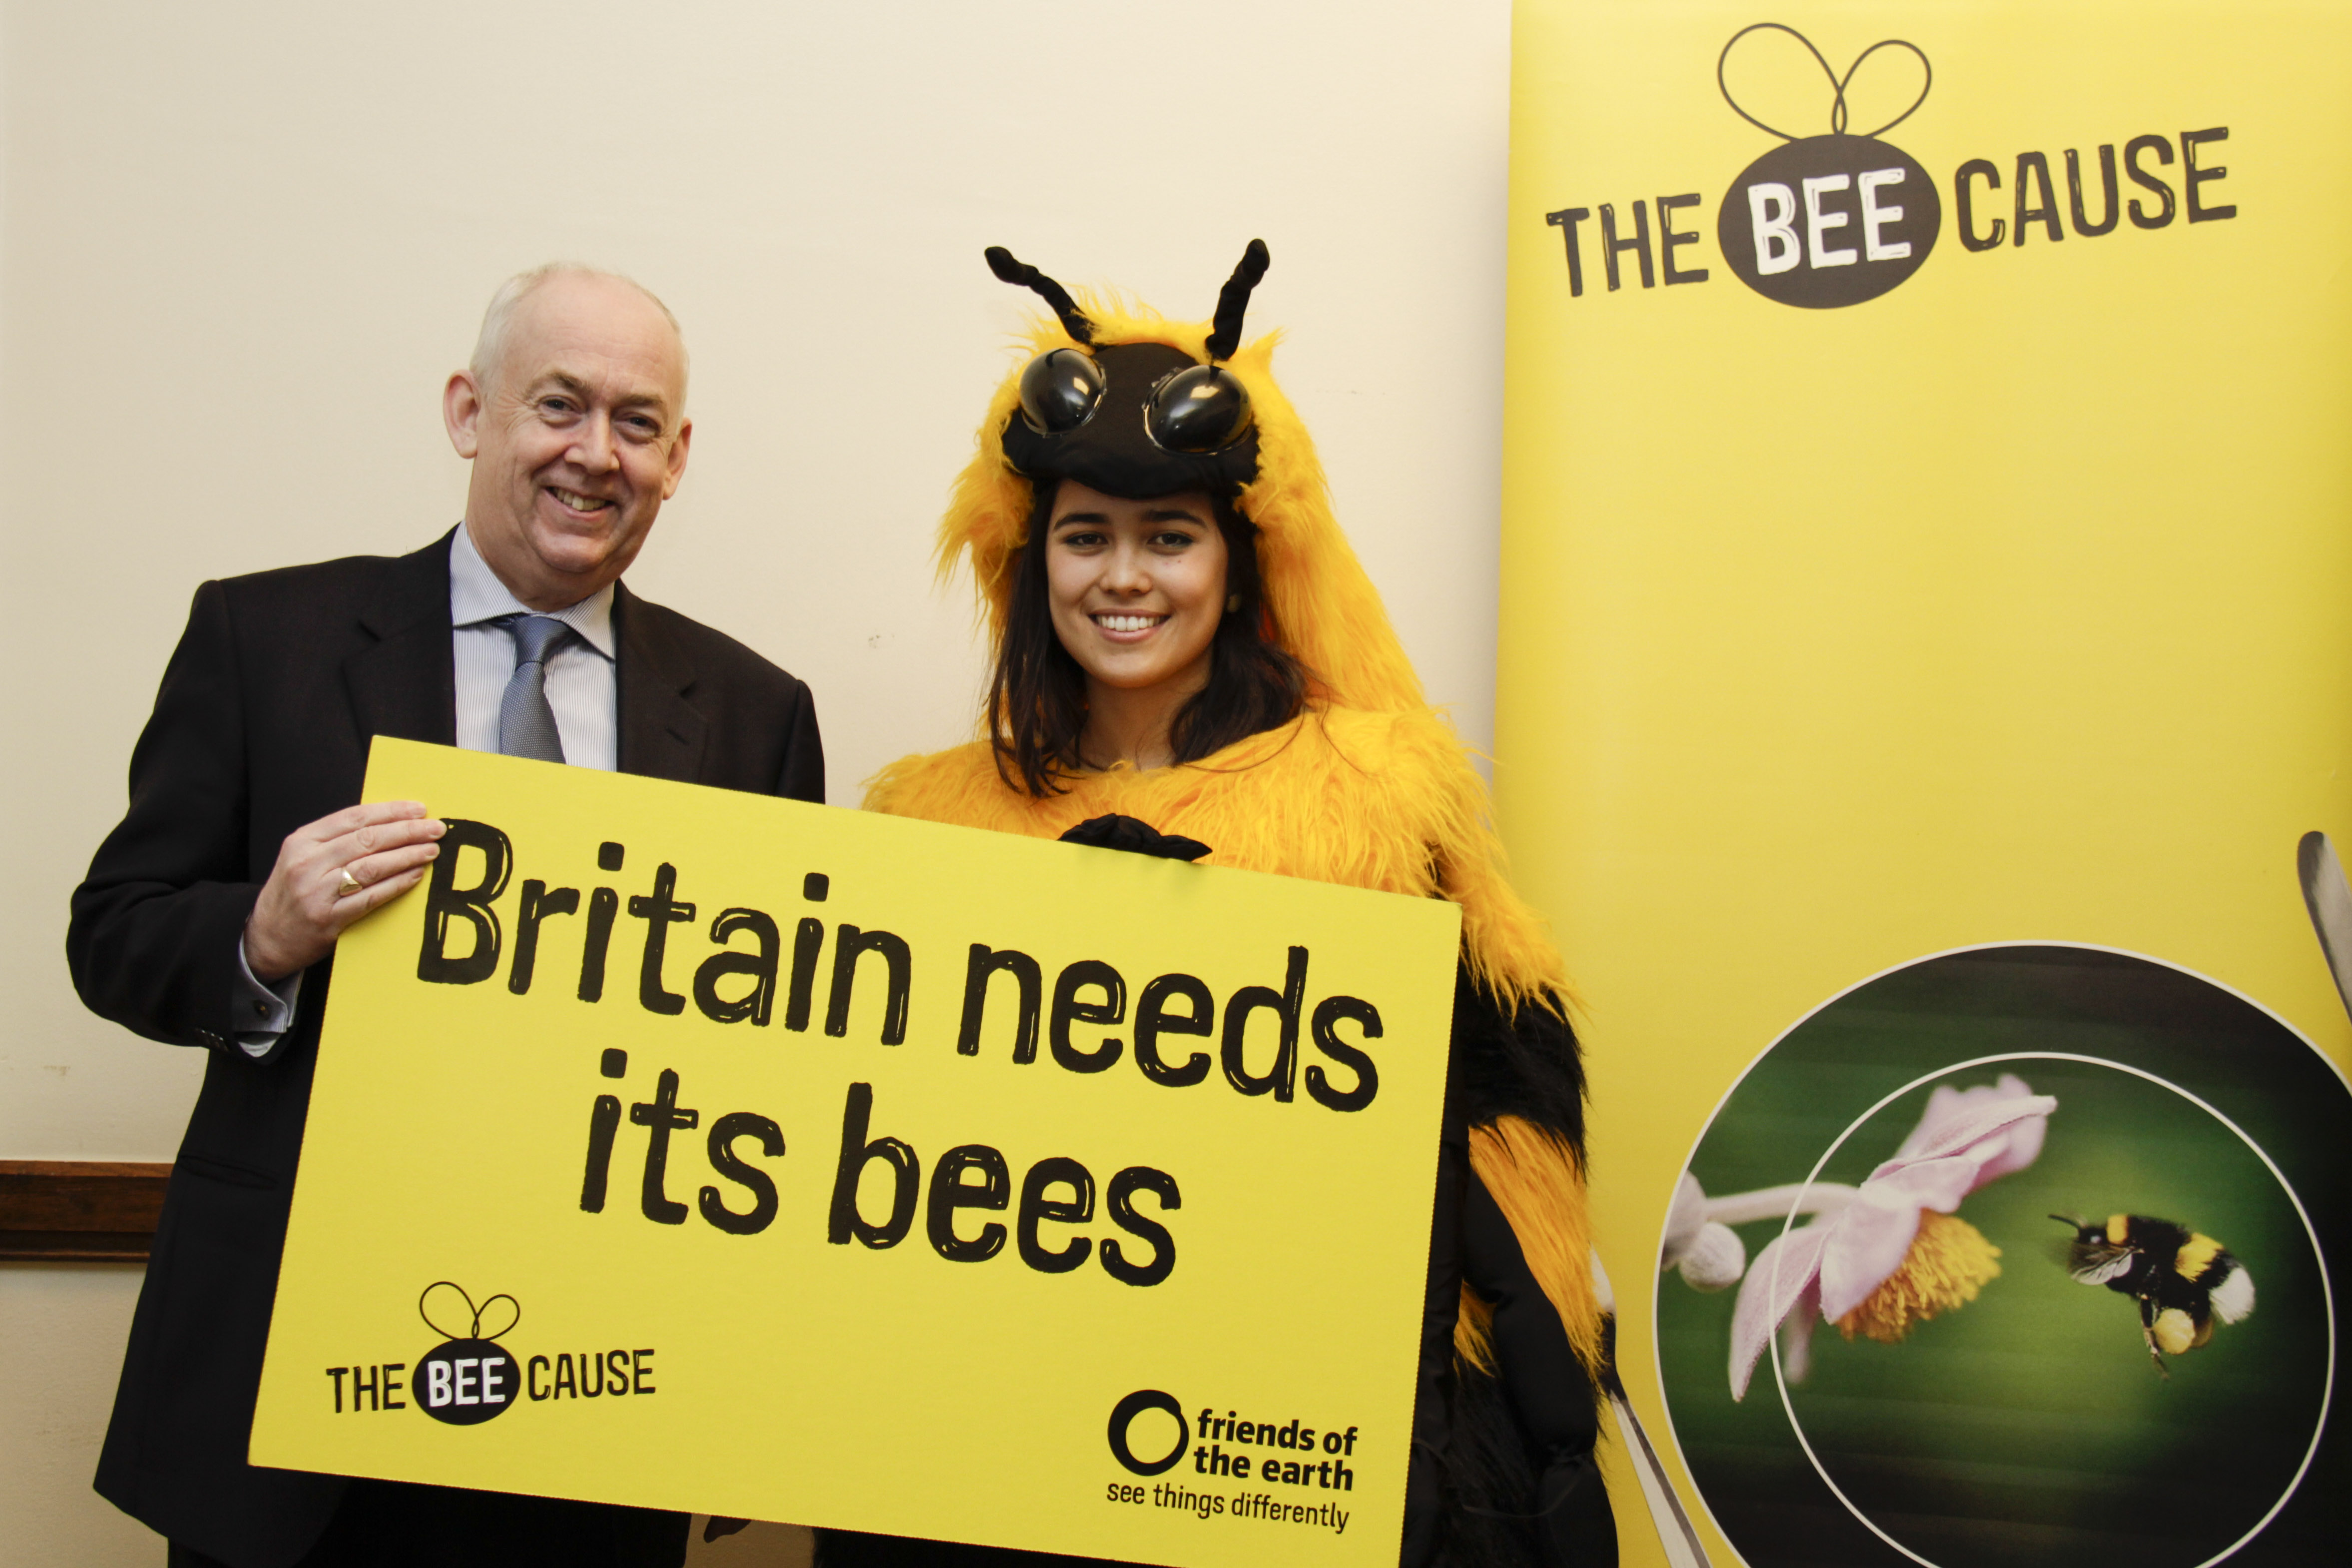 Friends_of_the_Earth_-_The_Bee_Cause